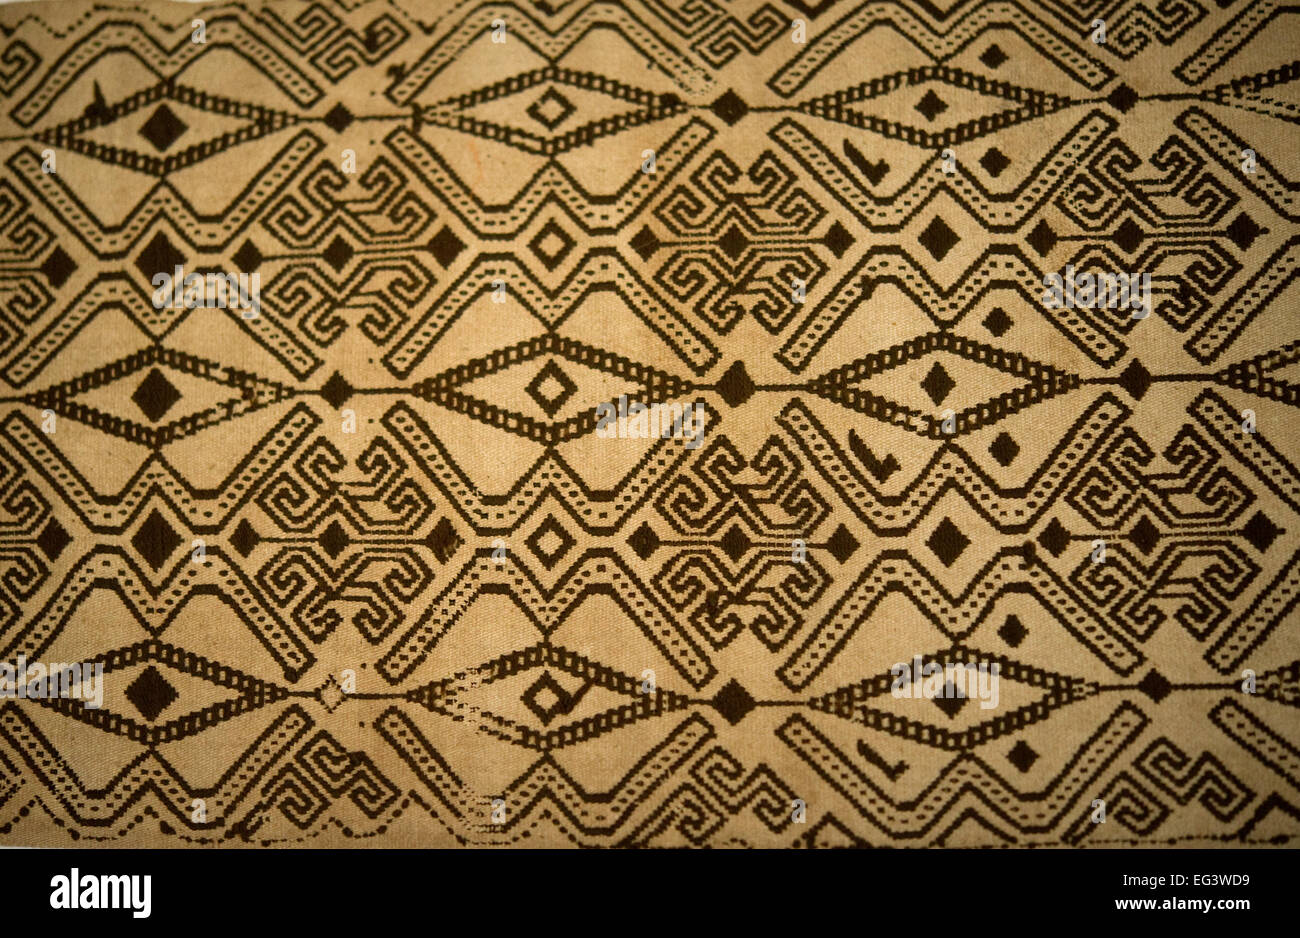 Abstract Motif Pattern Antique Traditional Textile Asian Art Weaving Stock Photo Alamy